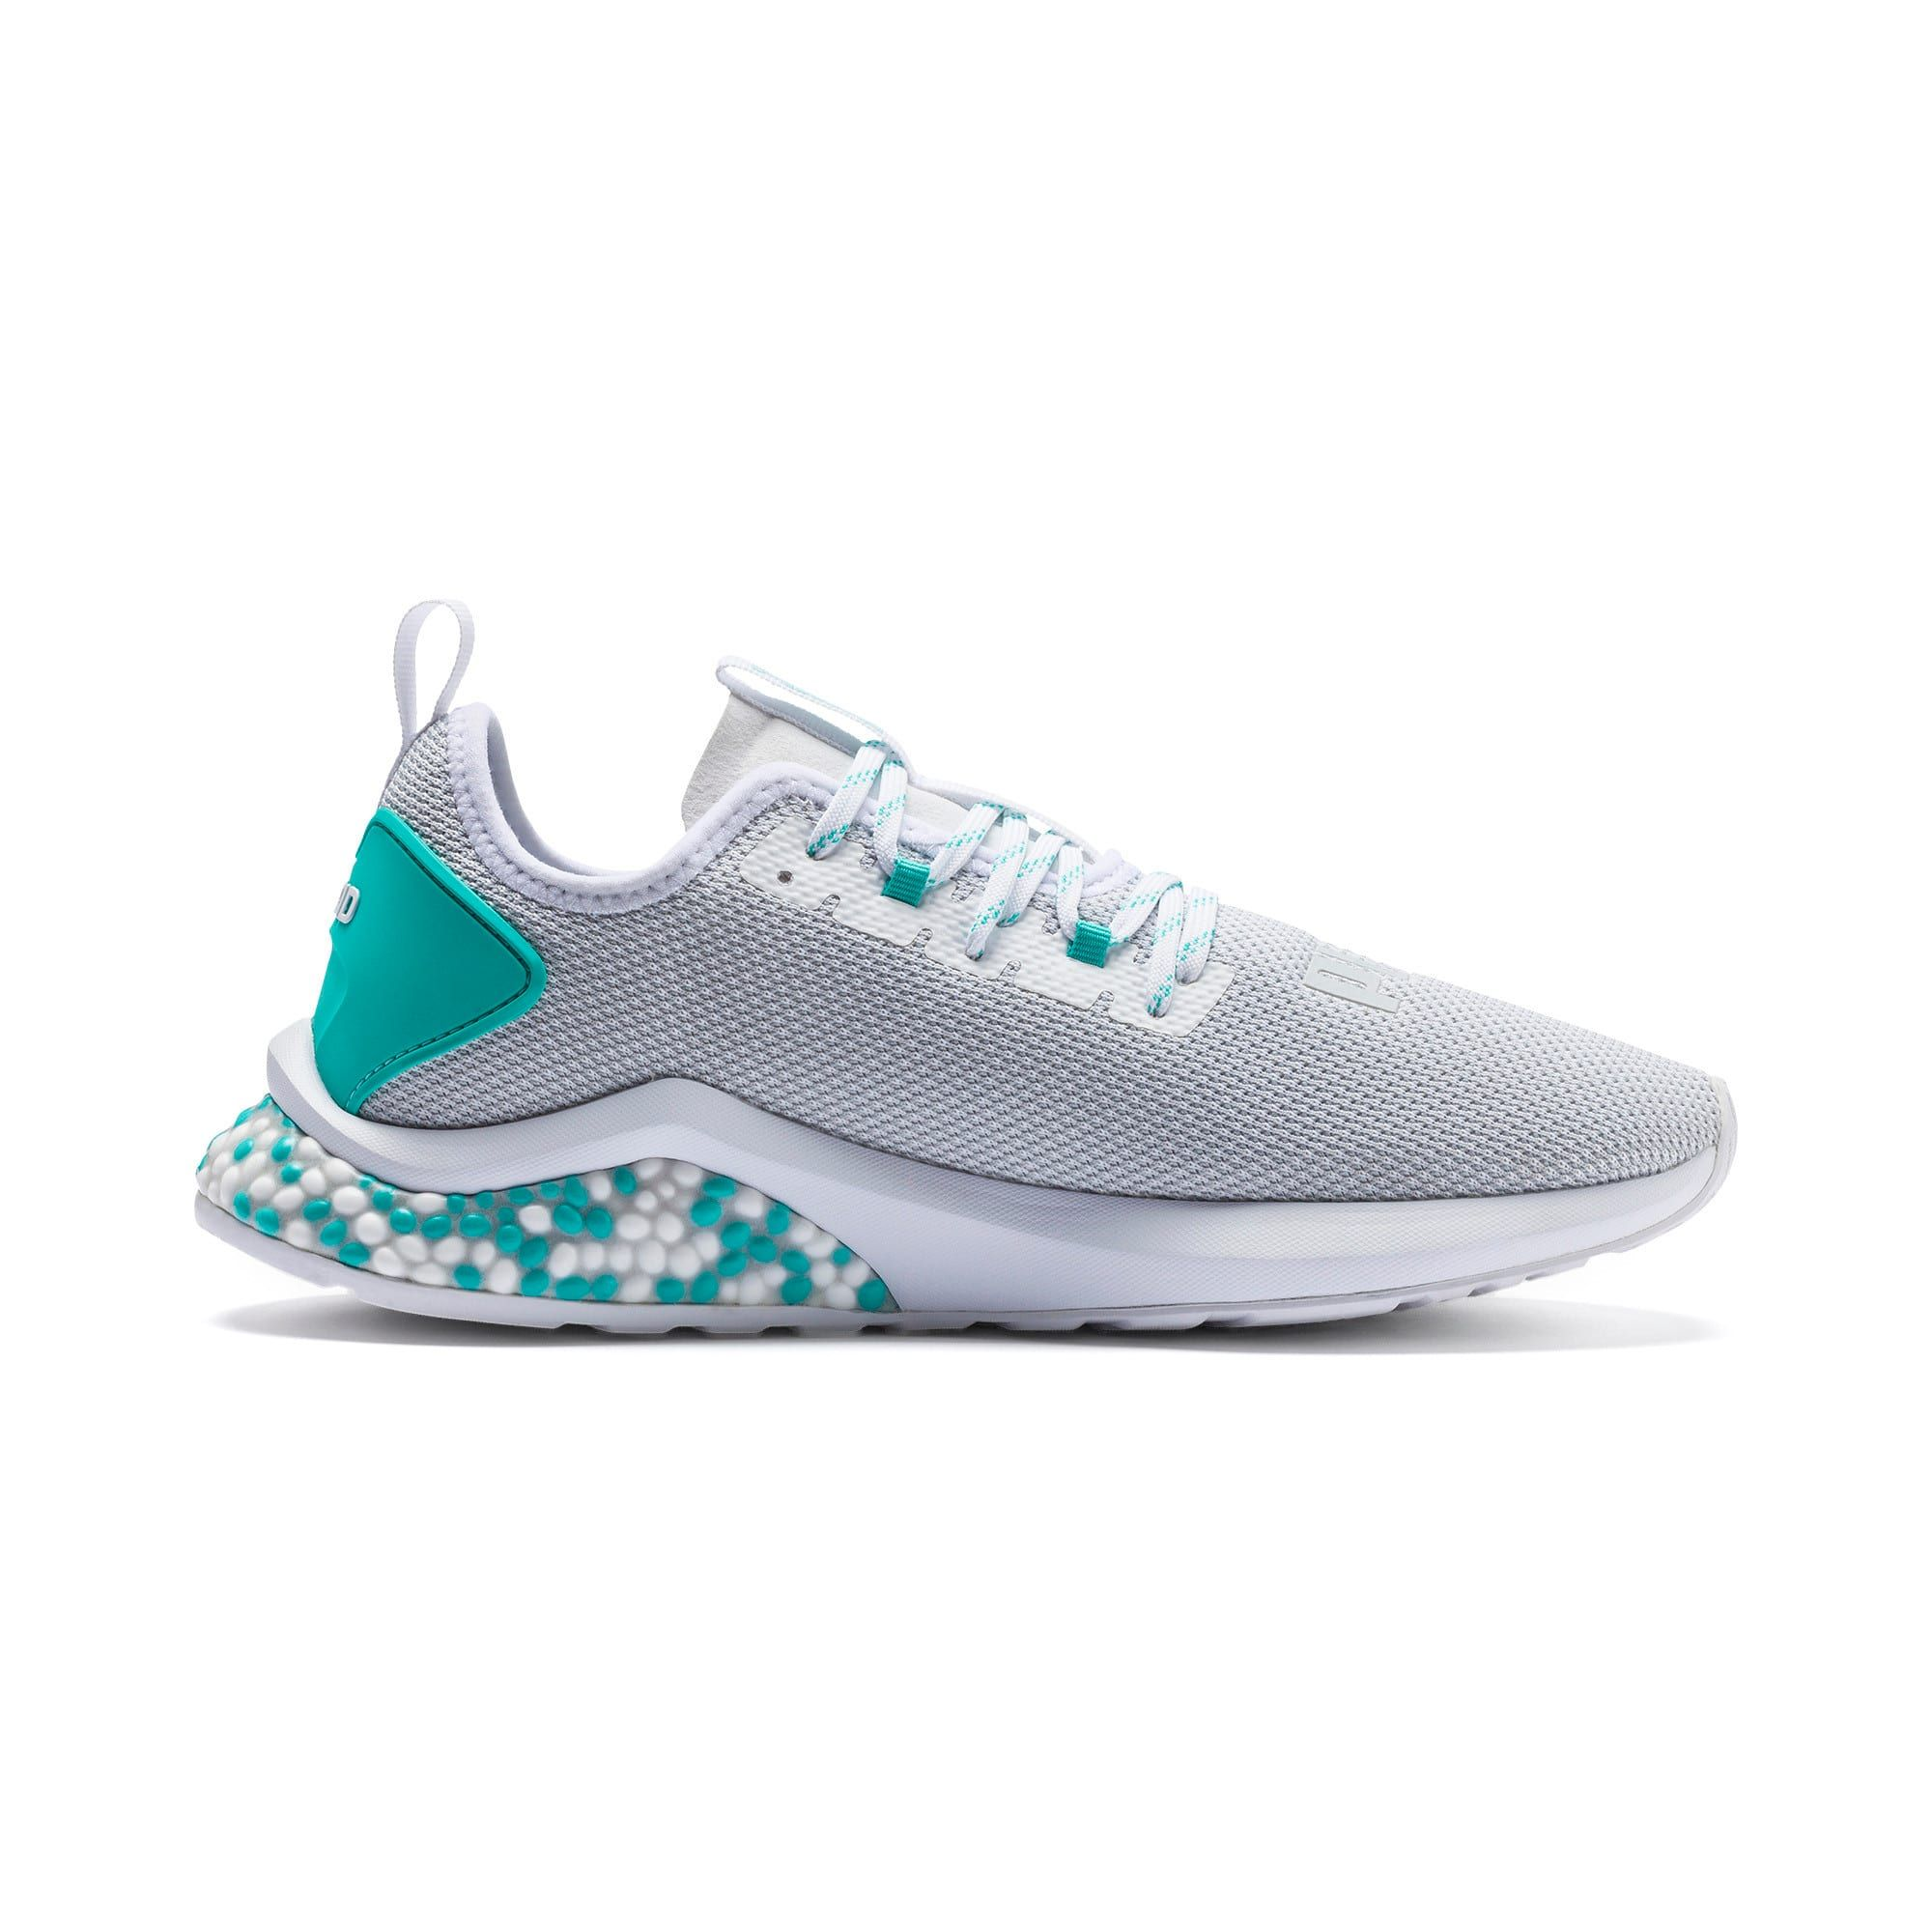 PUMA Hybrid Nx Mens Running Shoes in WhiteBlue Turquoise size 115